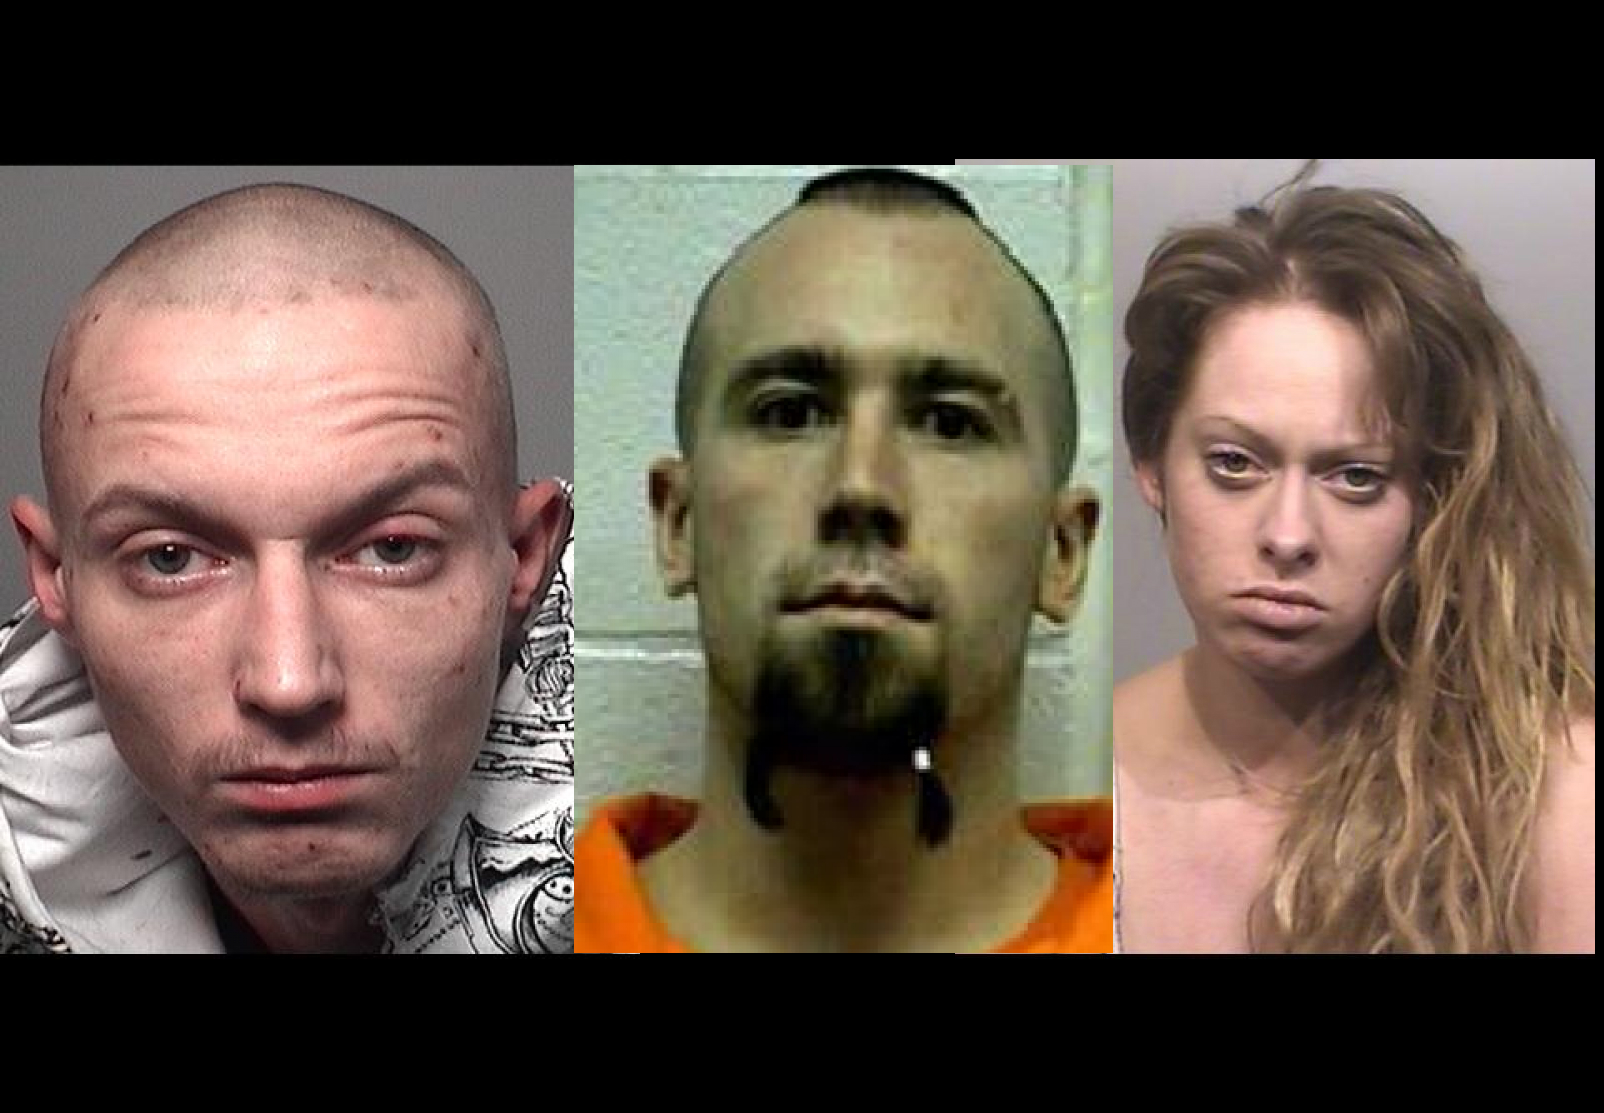 Perth County OPP has issued warrants for Daniel Battye, Mathew Drumond, and Cacie Dawson following a home invasion in Listowel. (Photos courtesy of Perth County OPP)